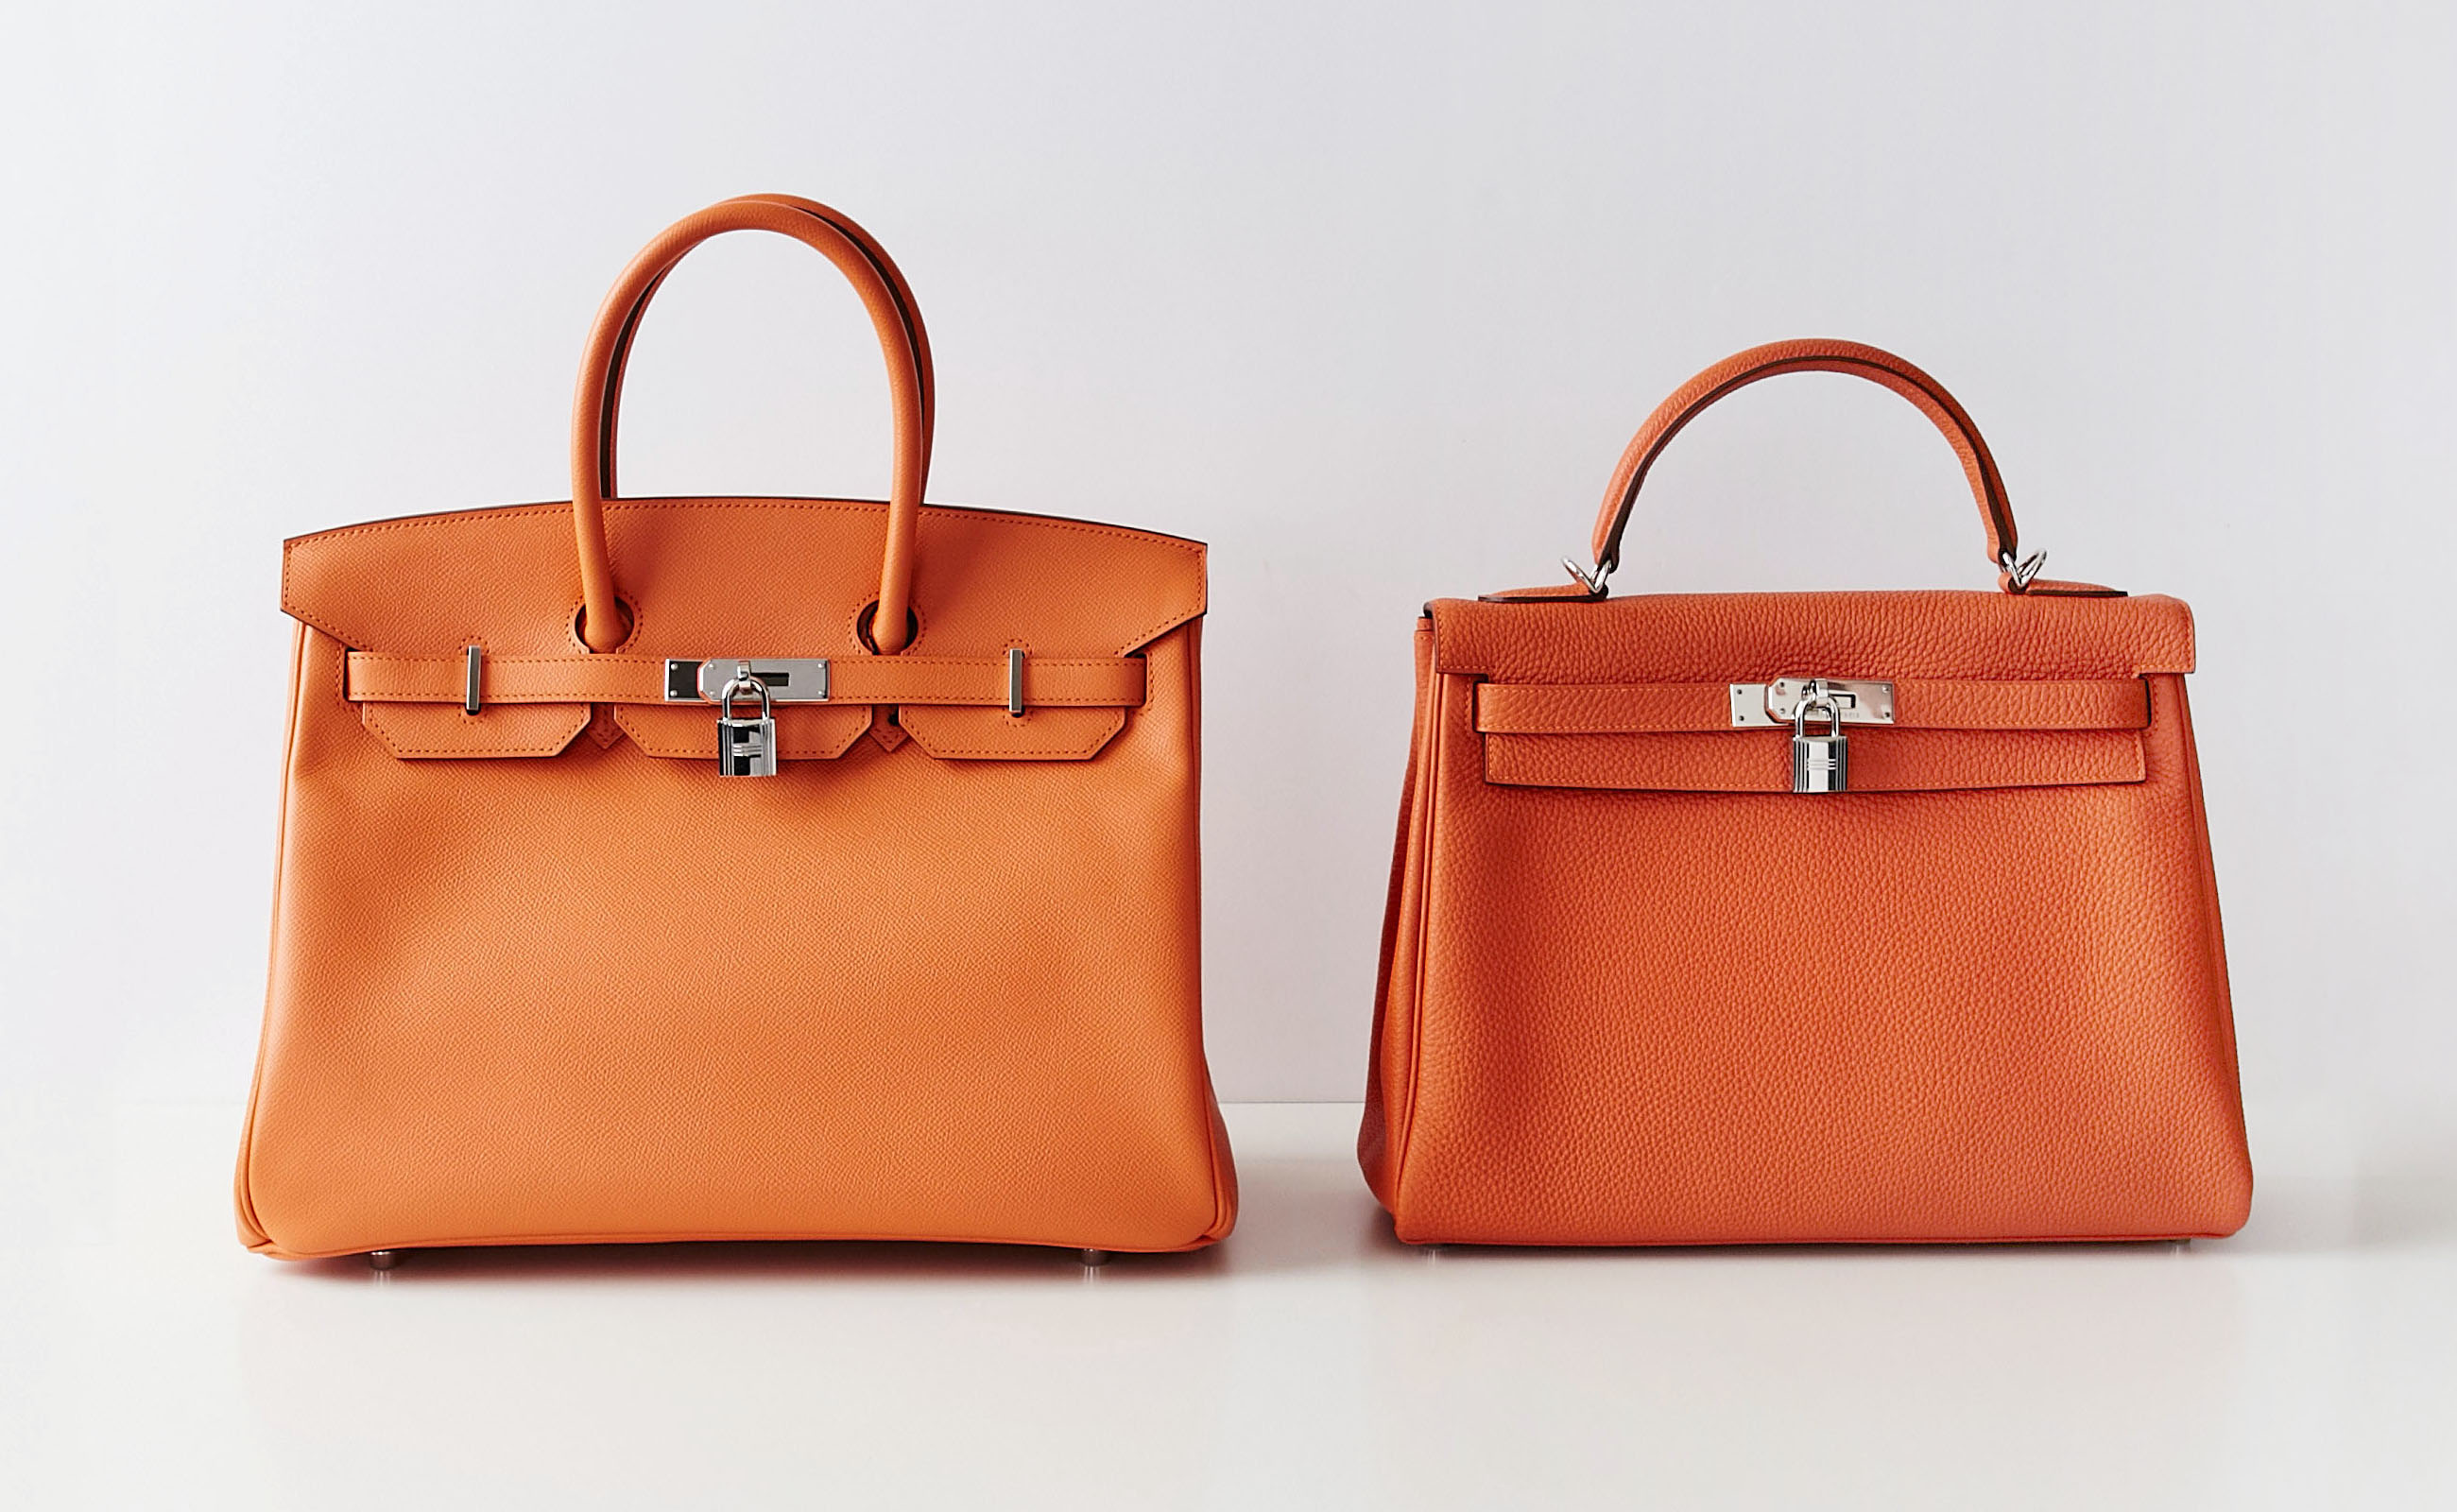 How To Tell The Difference Between an Hermes Birkin vs Kelly Bag | YoogisCloset.com